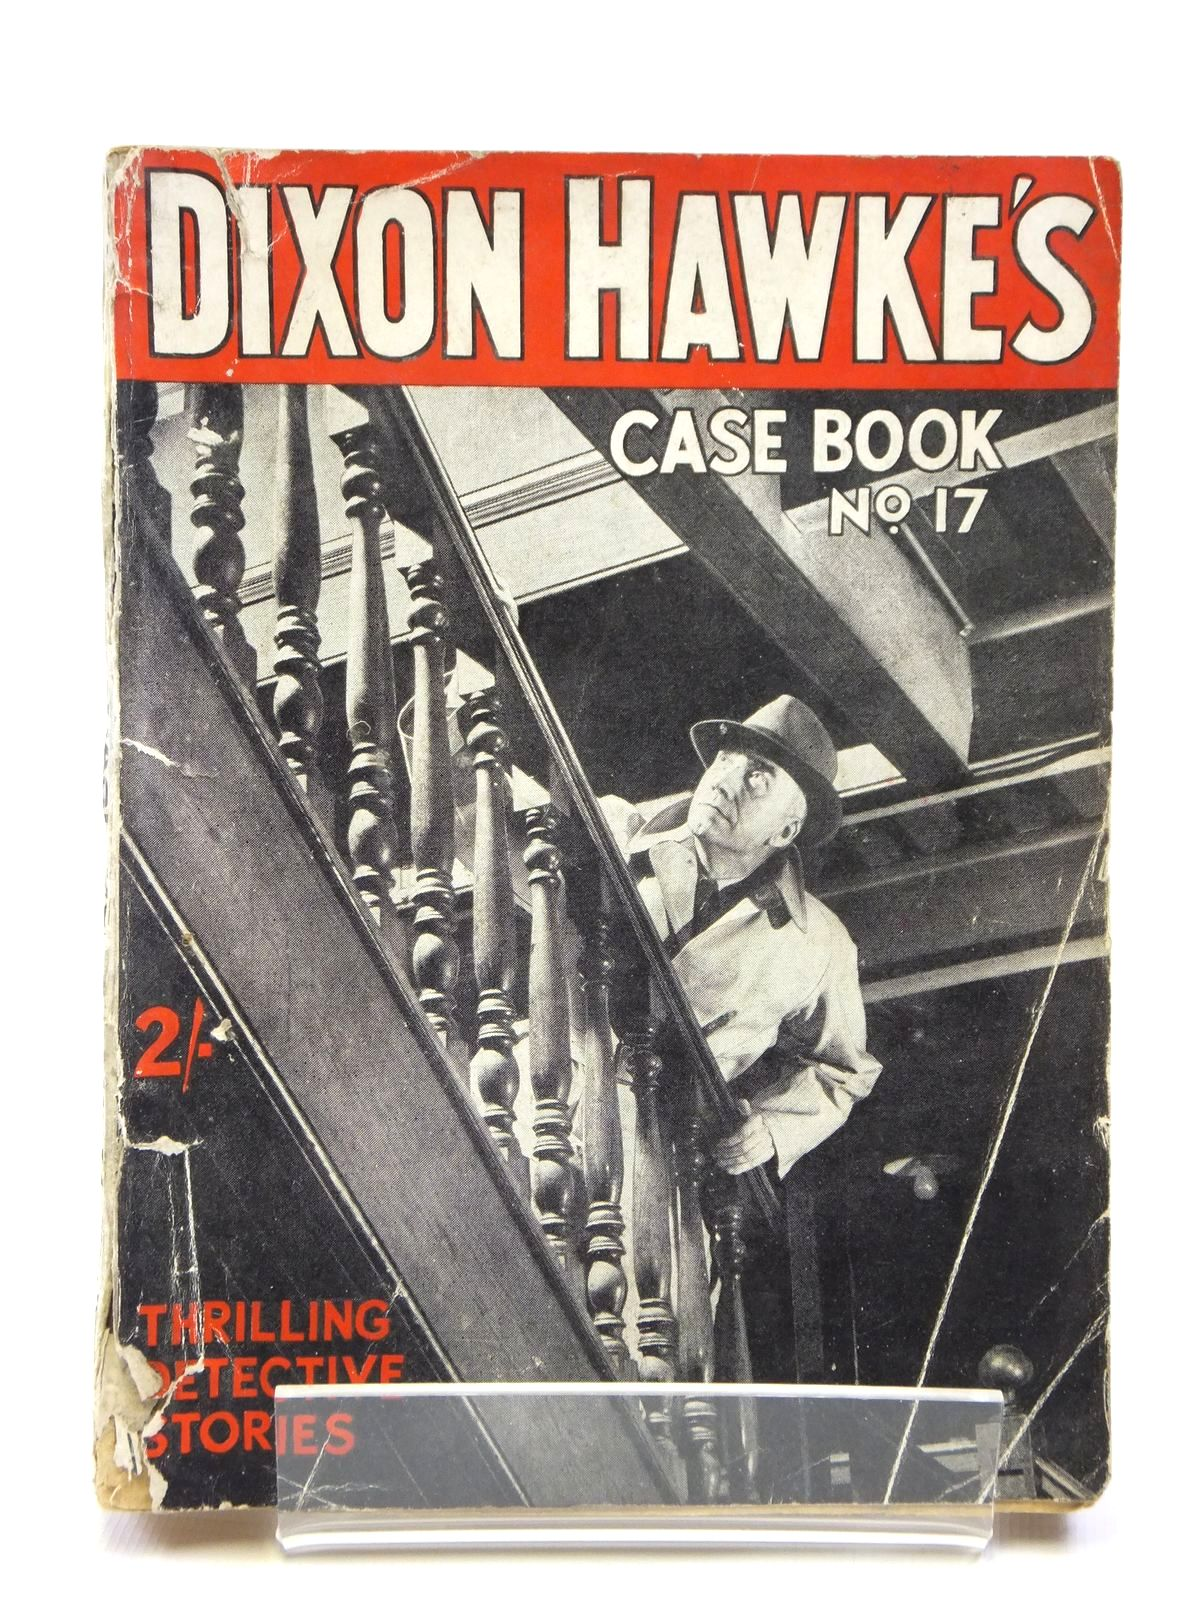 Photo of DIXON HAWKE'S CASE BOOK NO. 17 written by Hawke, Dixon published by D.C. Thomson & Co Ltd. (STOCK CODE: 2120994)  for sale by Stella & Rose's Books